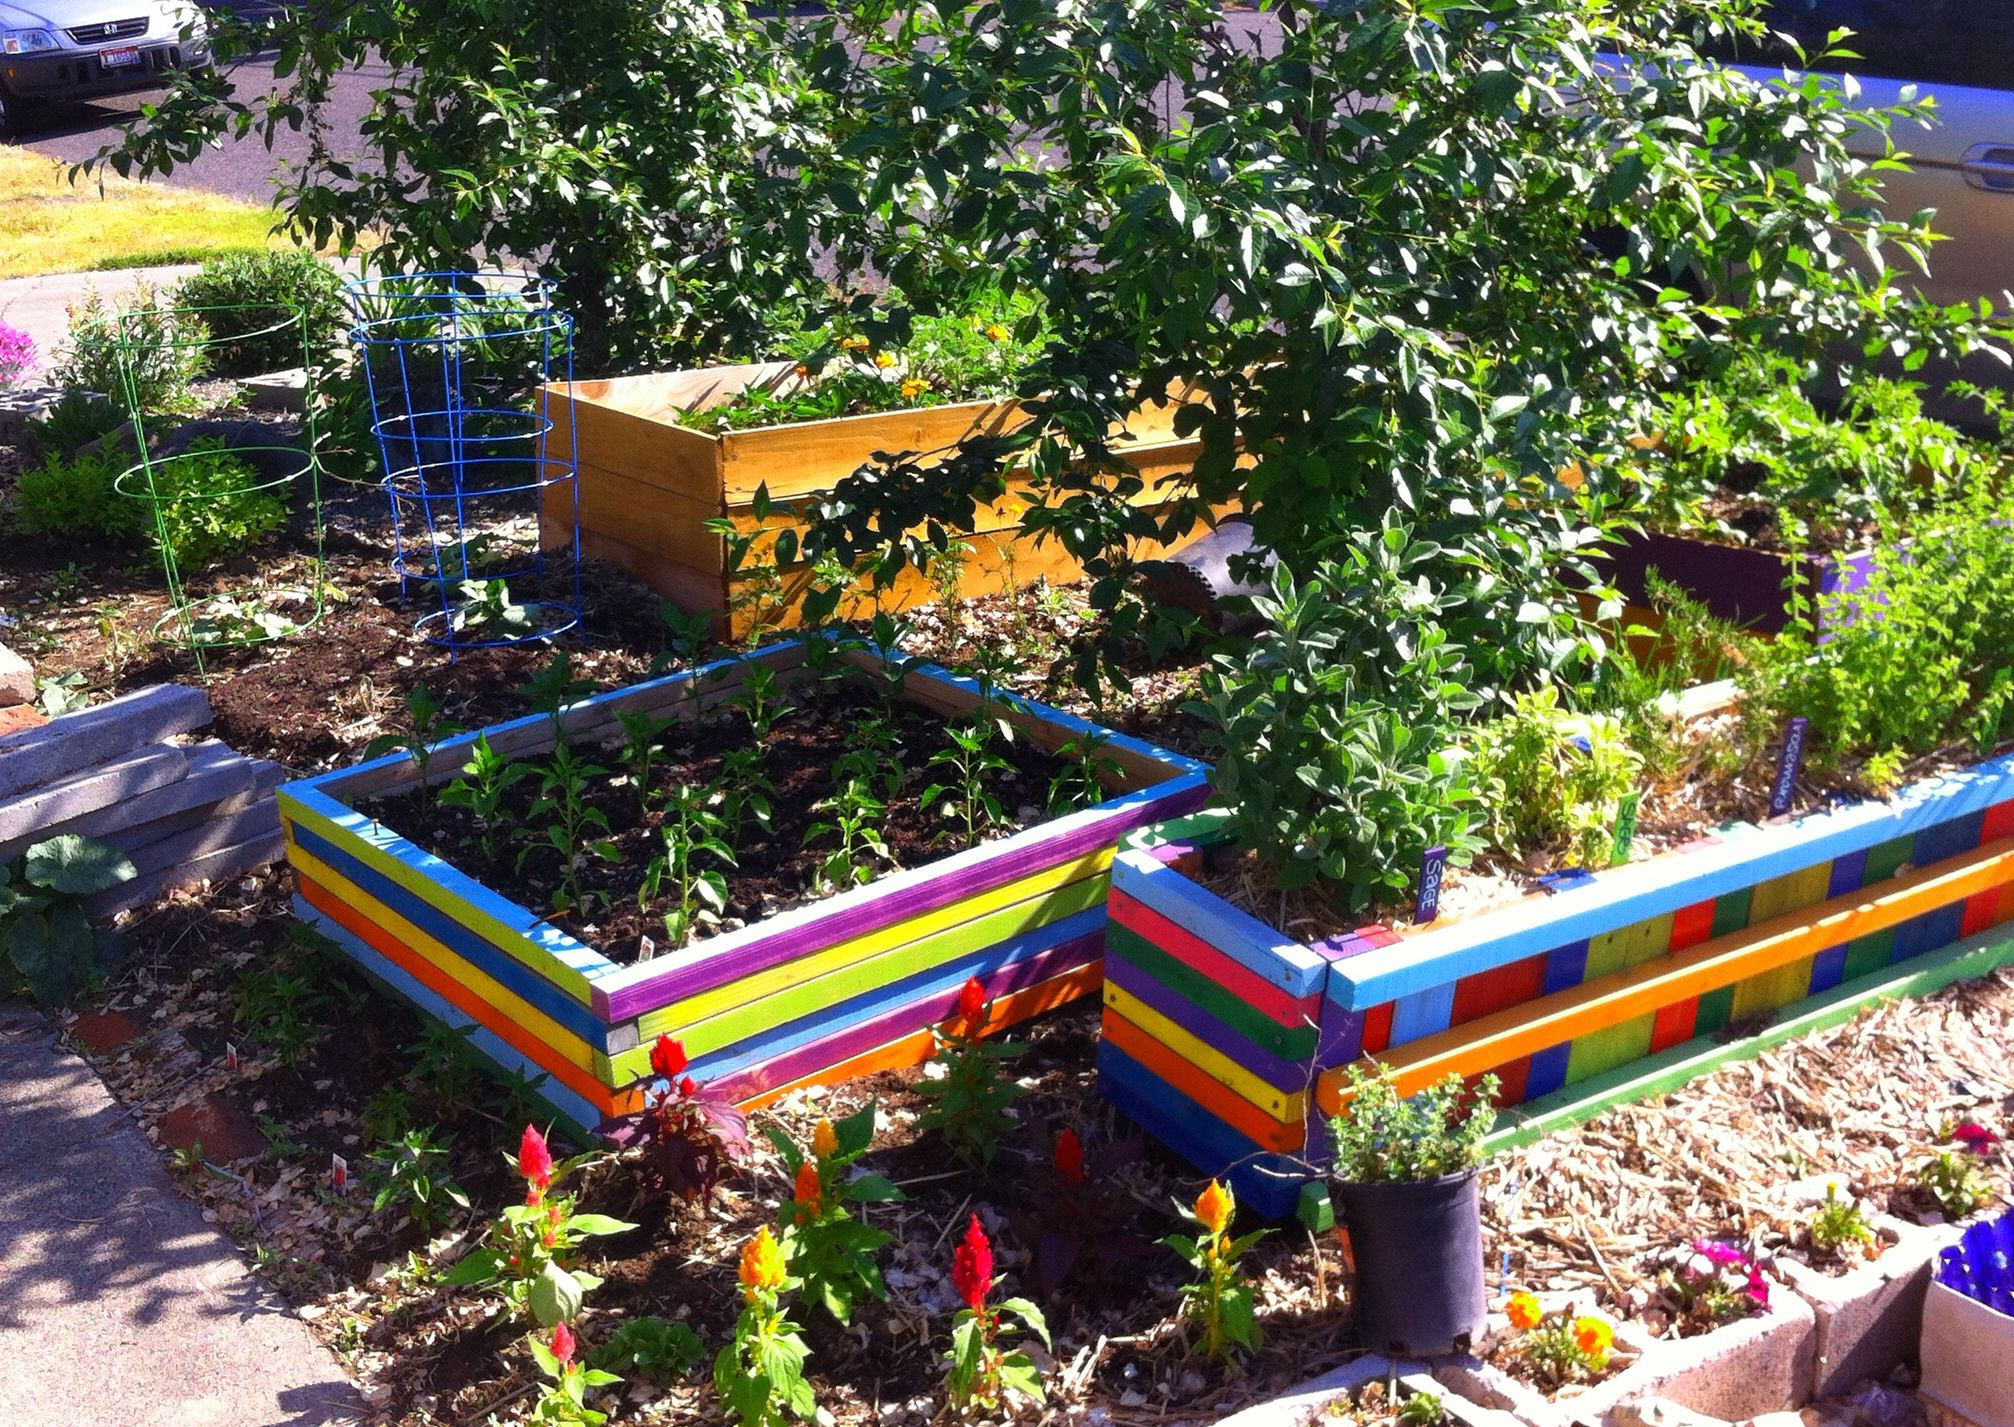 Painted Raised Garden Beds In My Front Yard Garden With Images